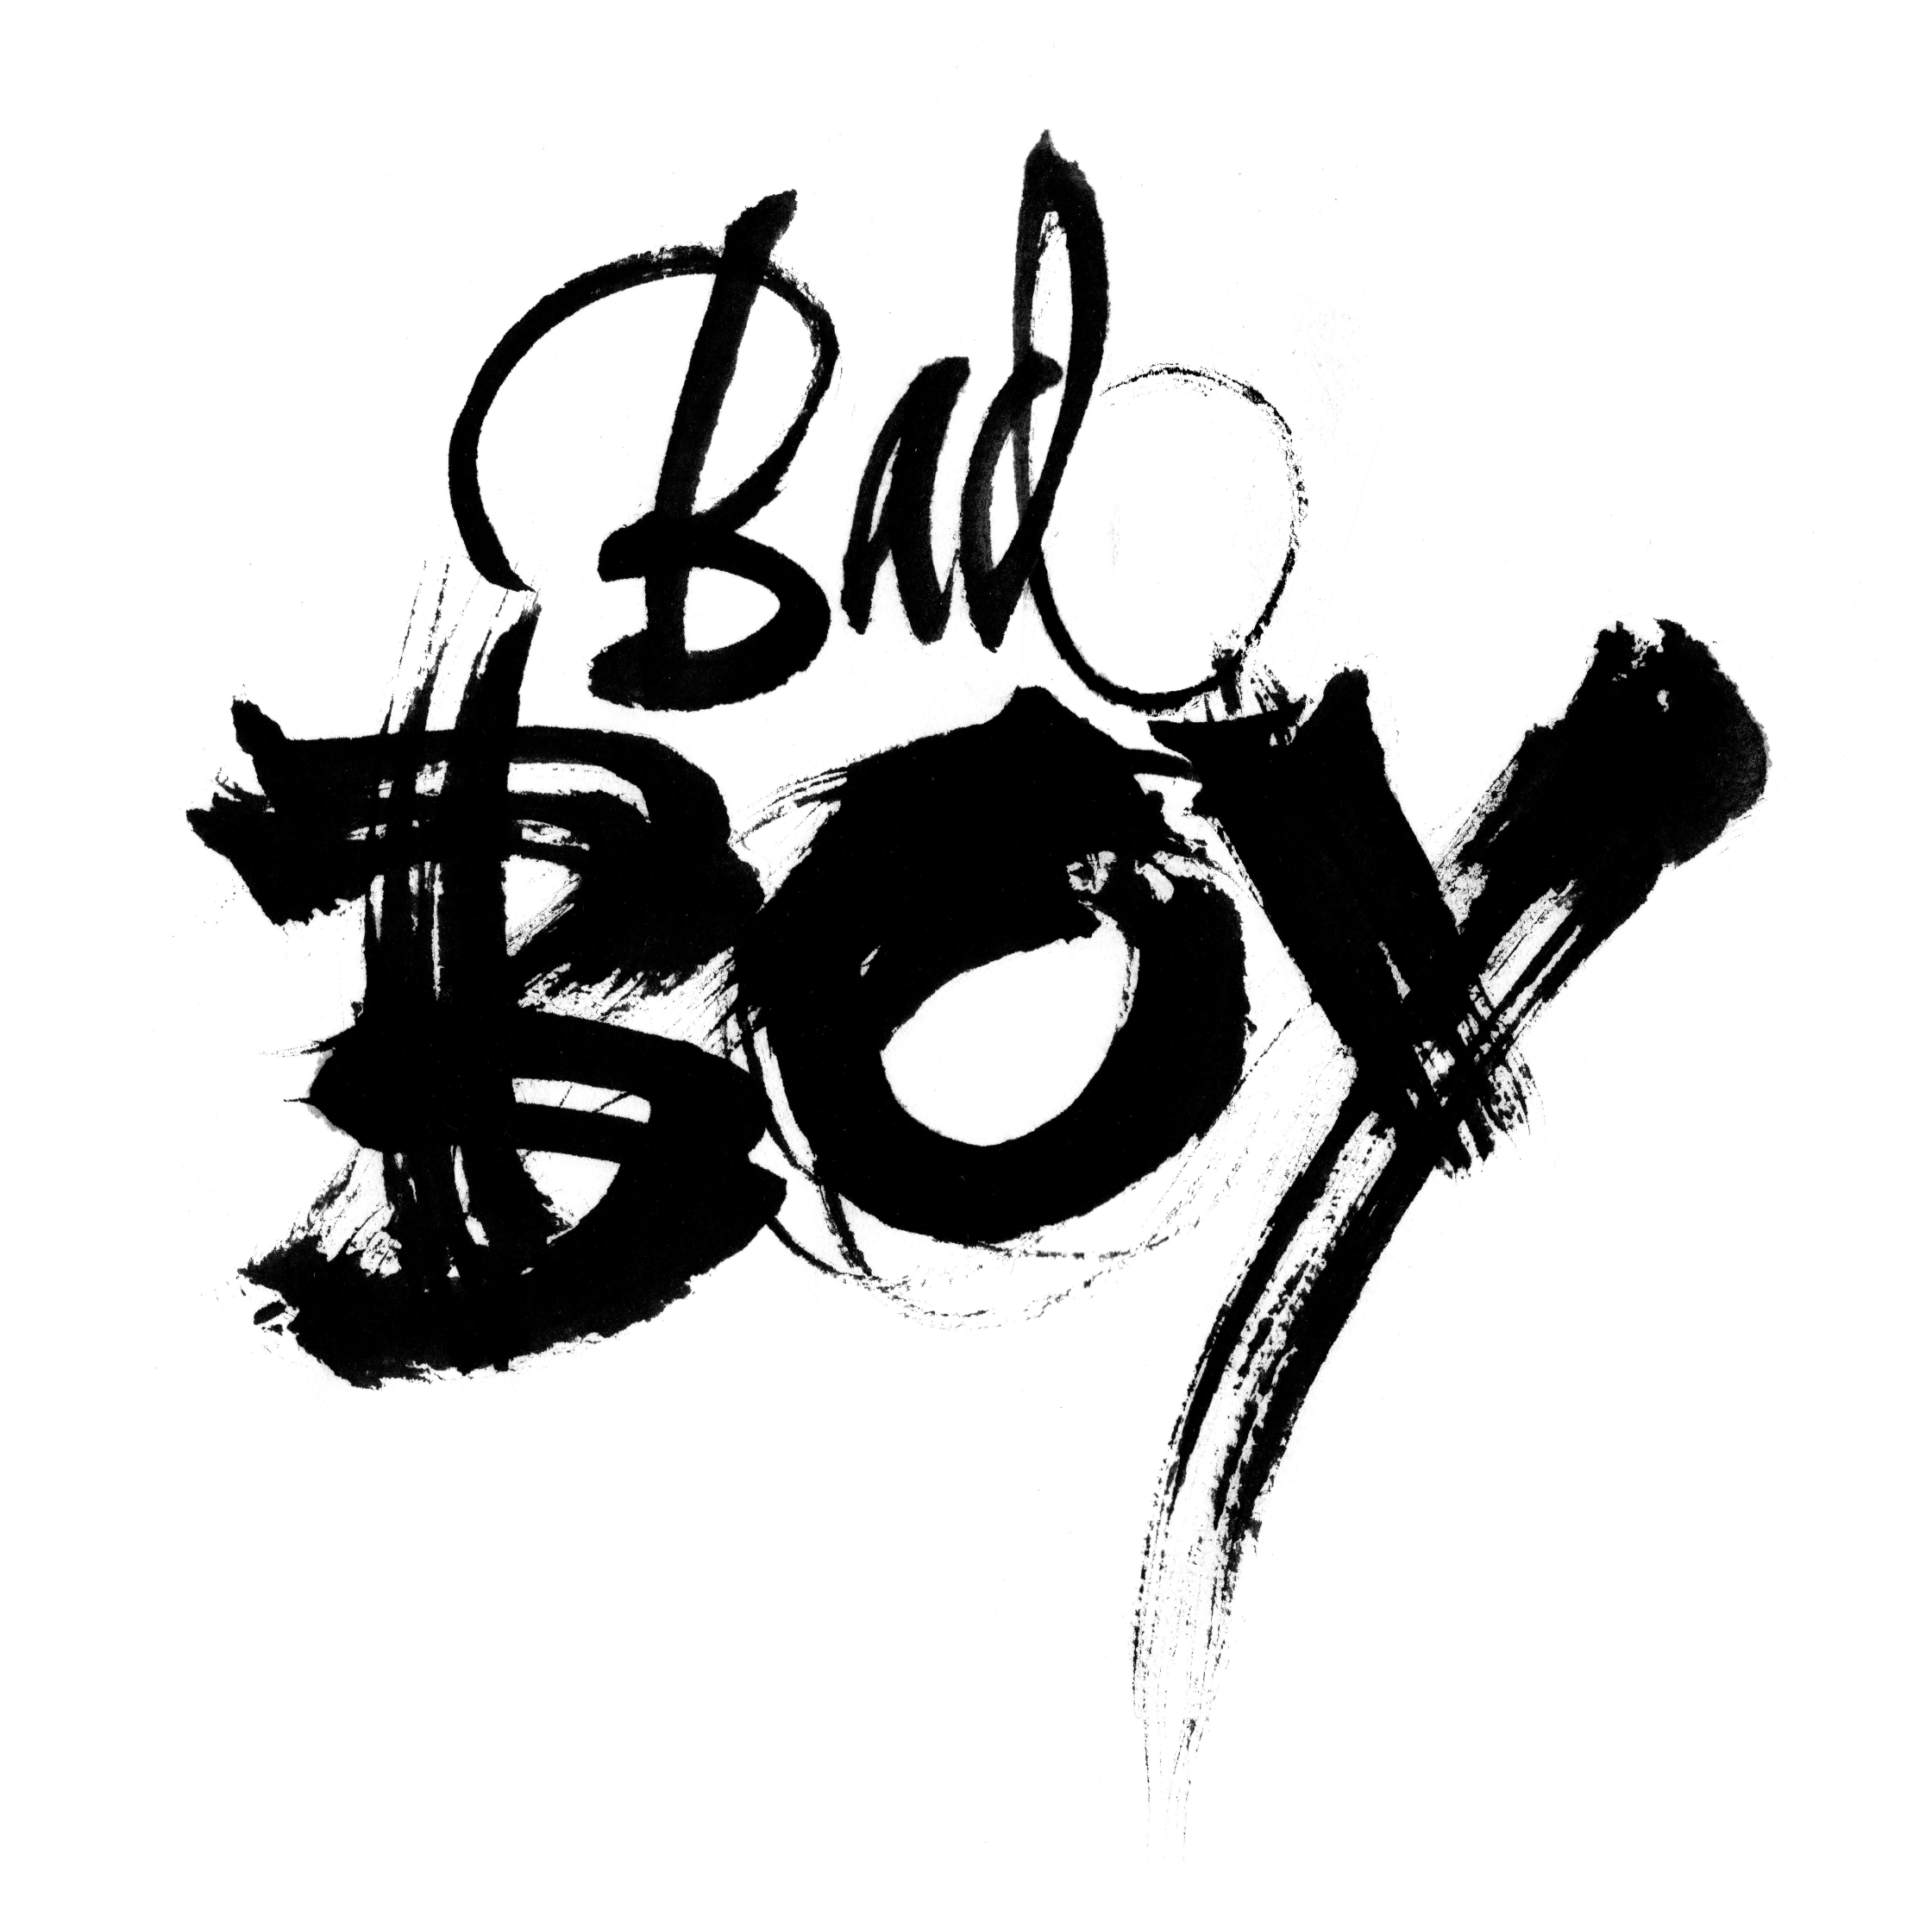 BAD BOY 0039 ok OK.jpg